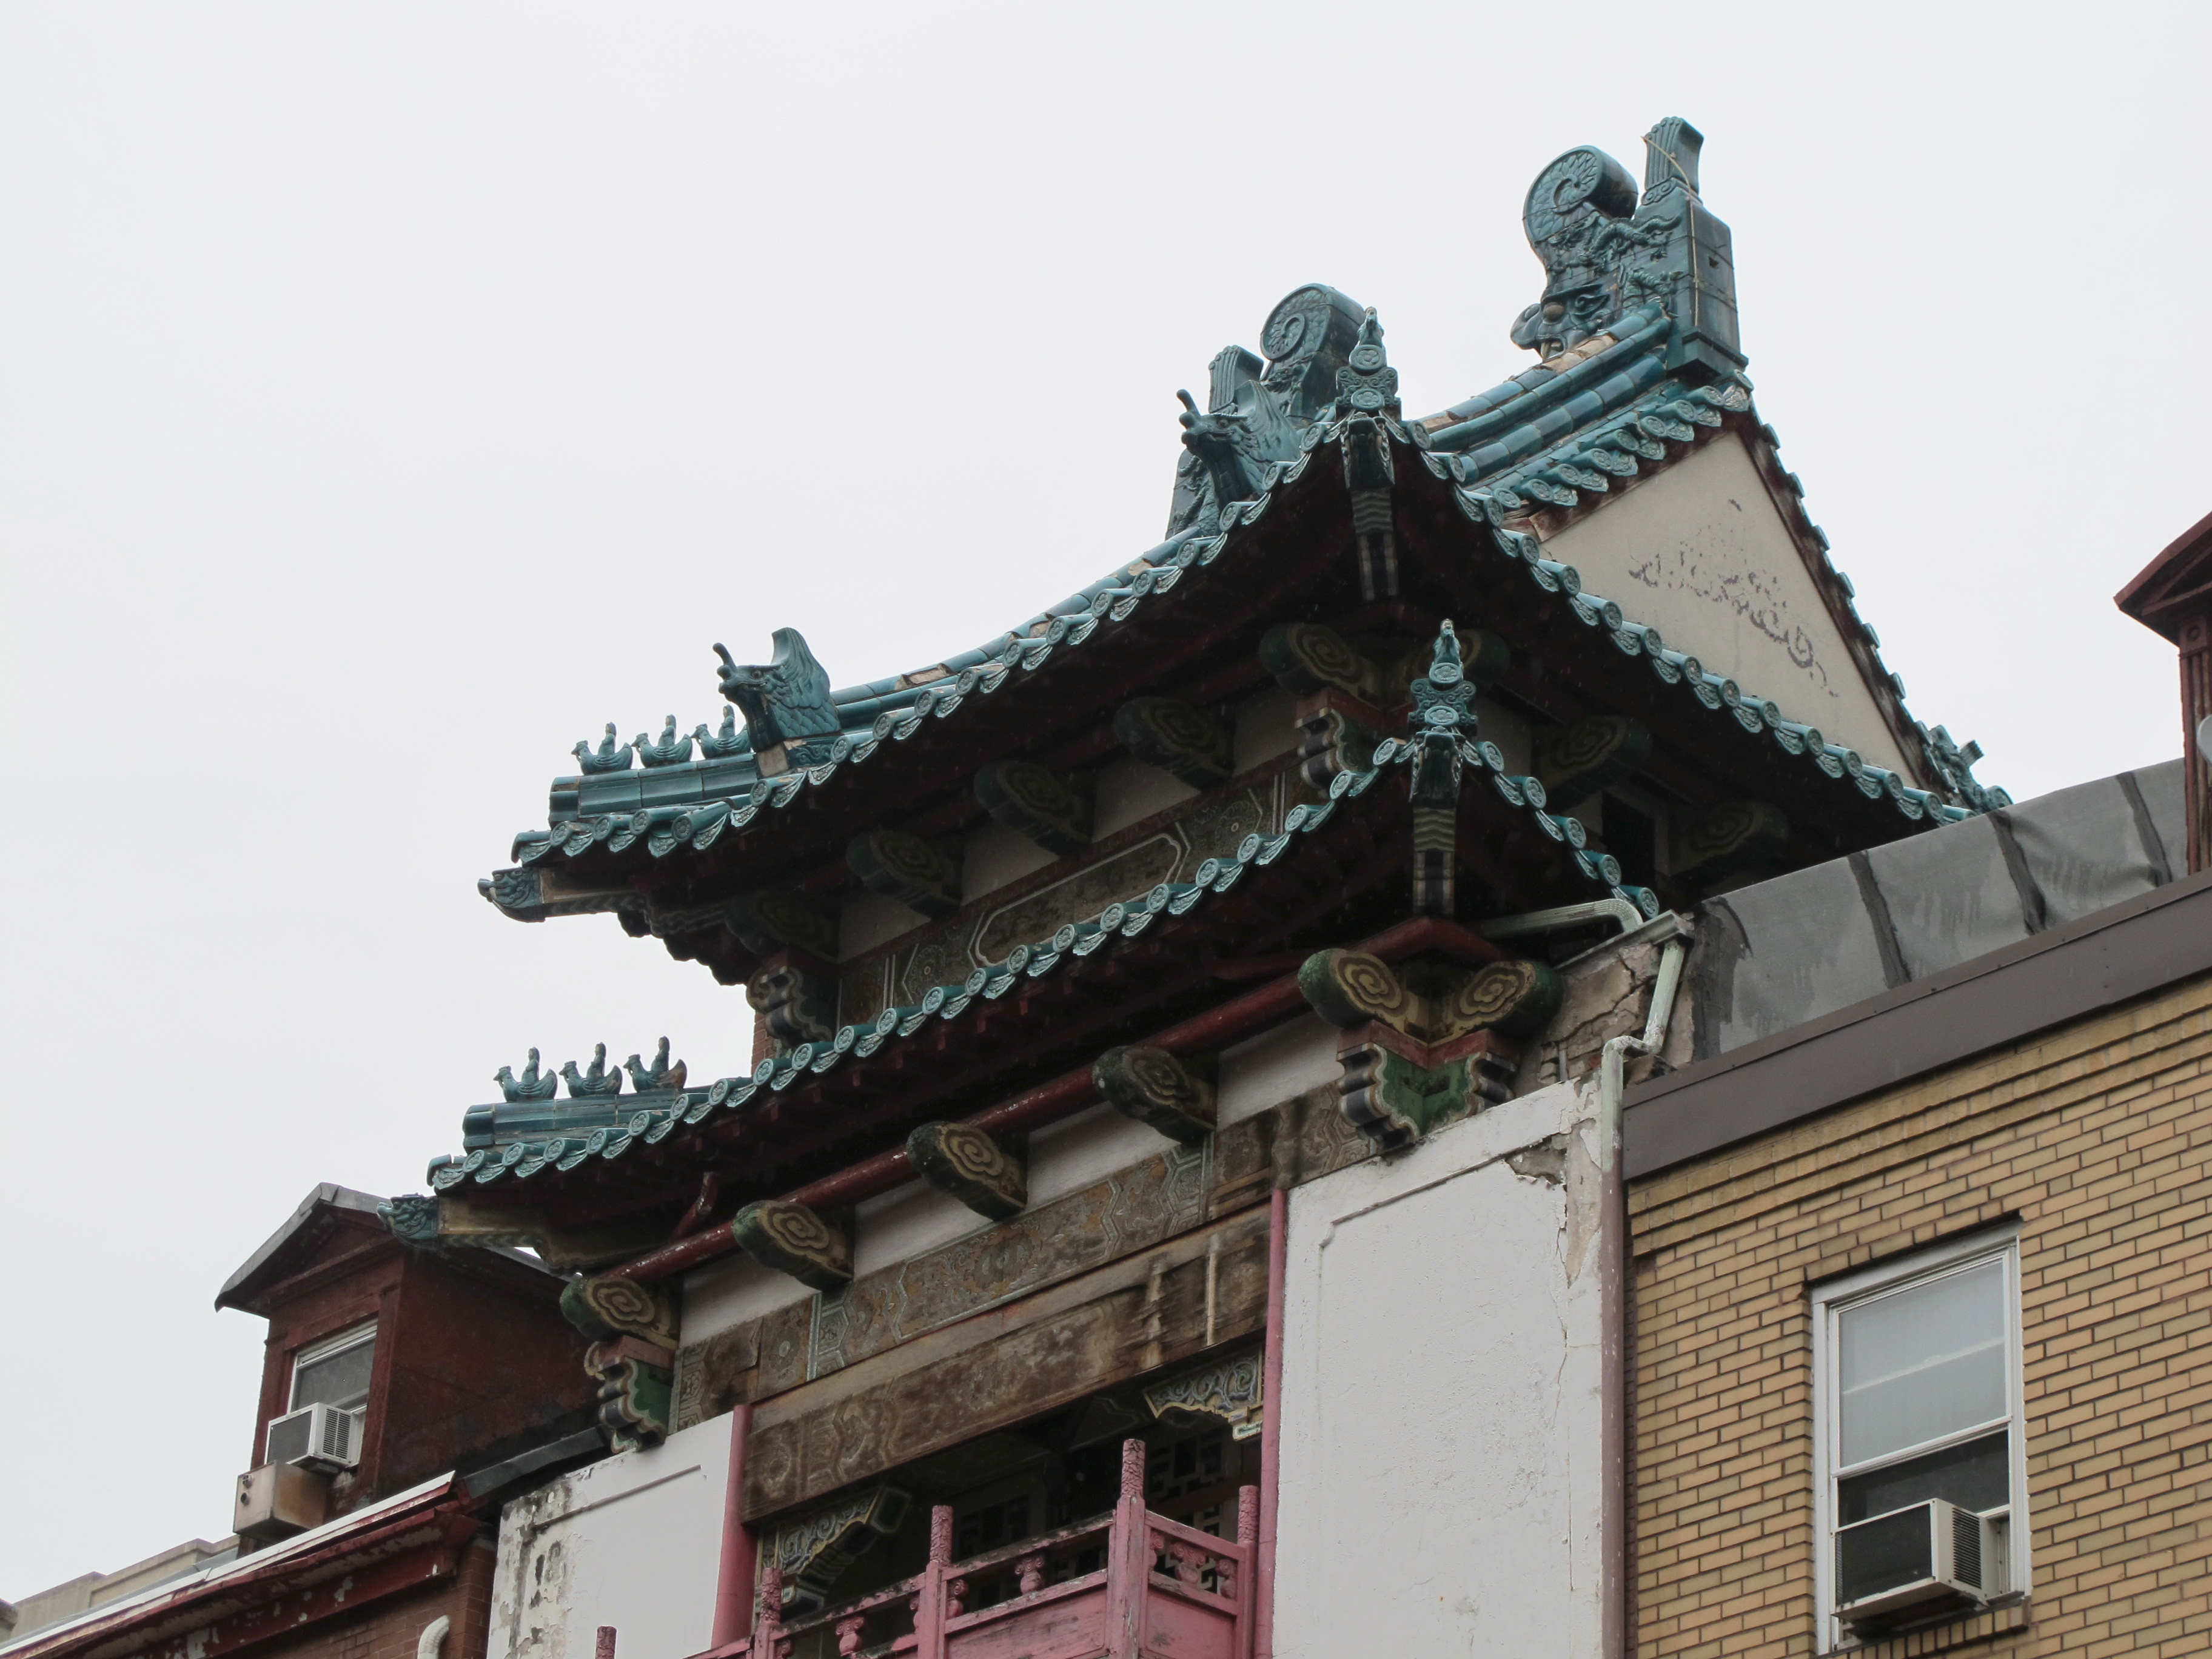 Roof detail, 125 N. 10th Street, May 2016